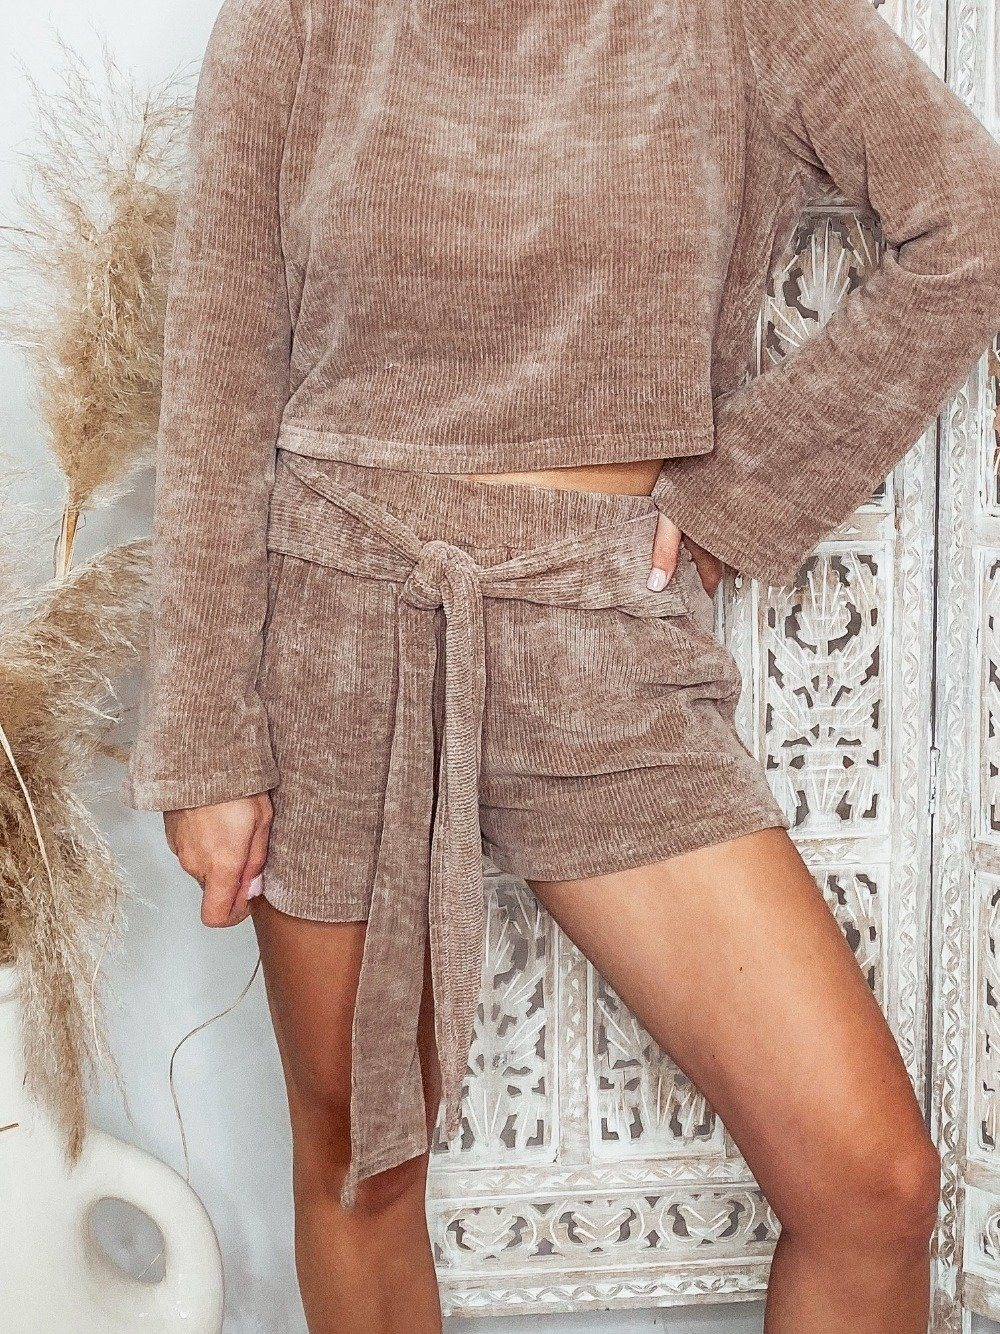 Match Made In Heaven Shorts - Taupe Shorts Dakotas Boutique:Trendy Women's Fashion Boutique